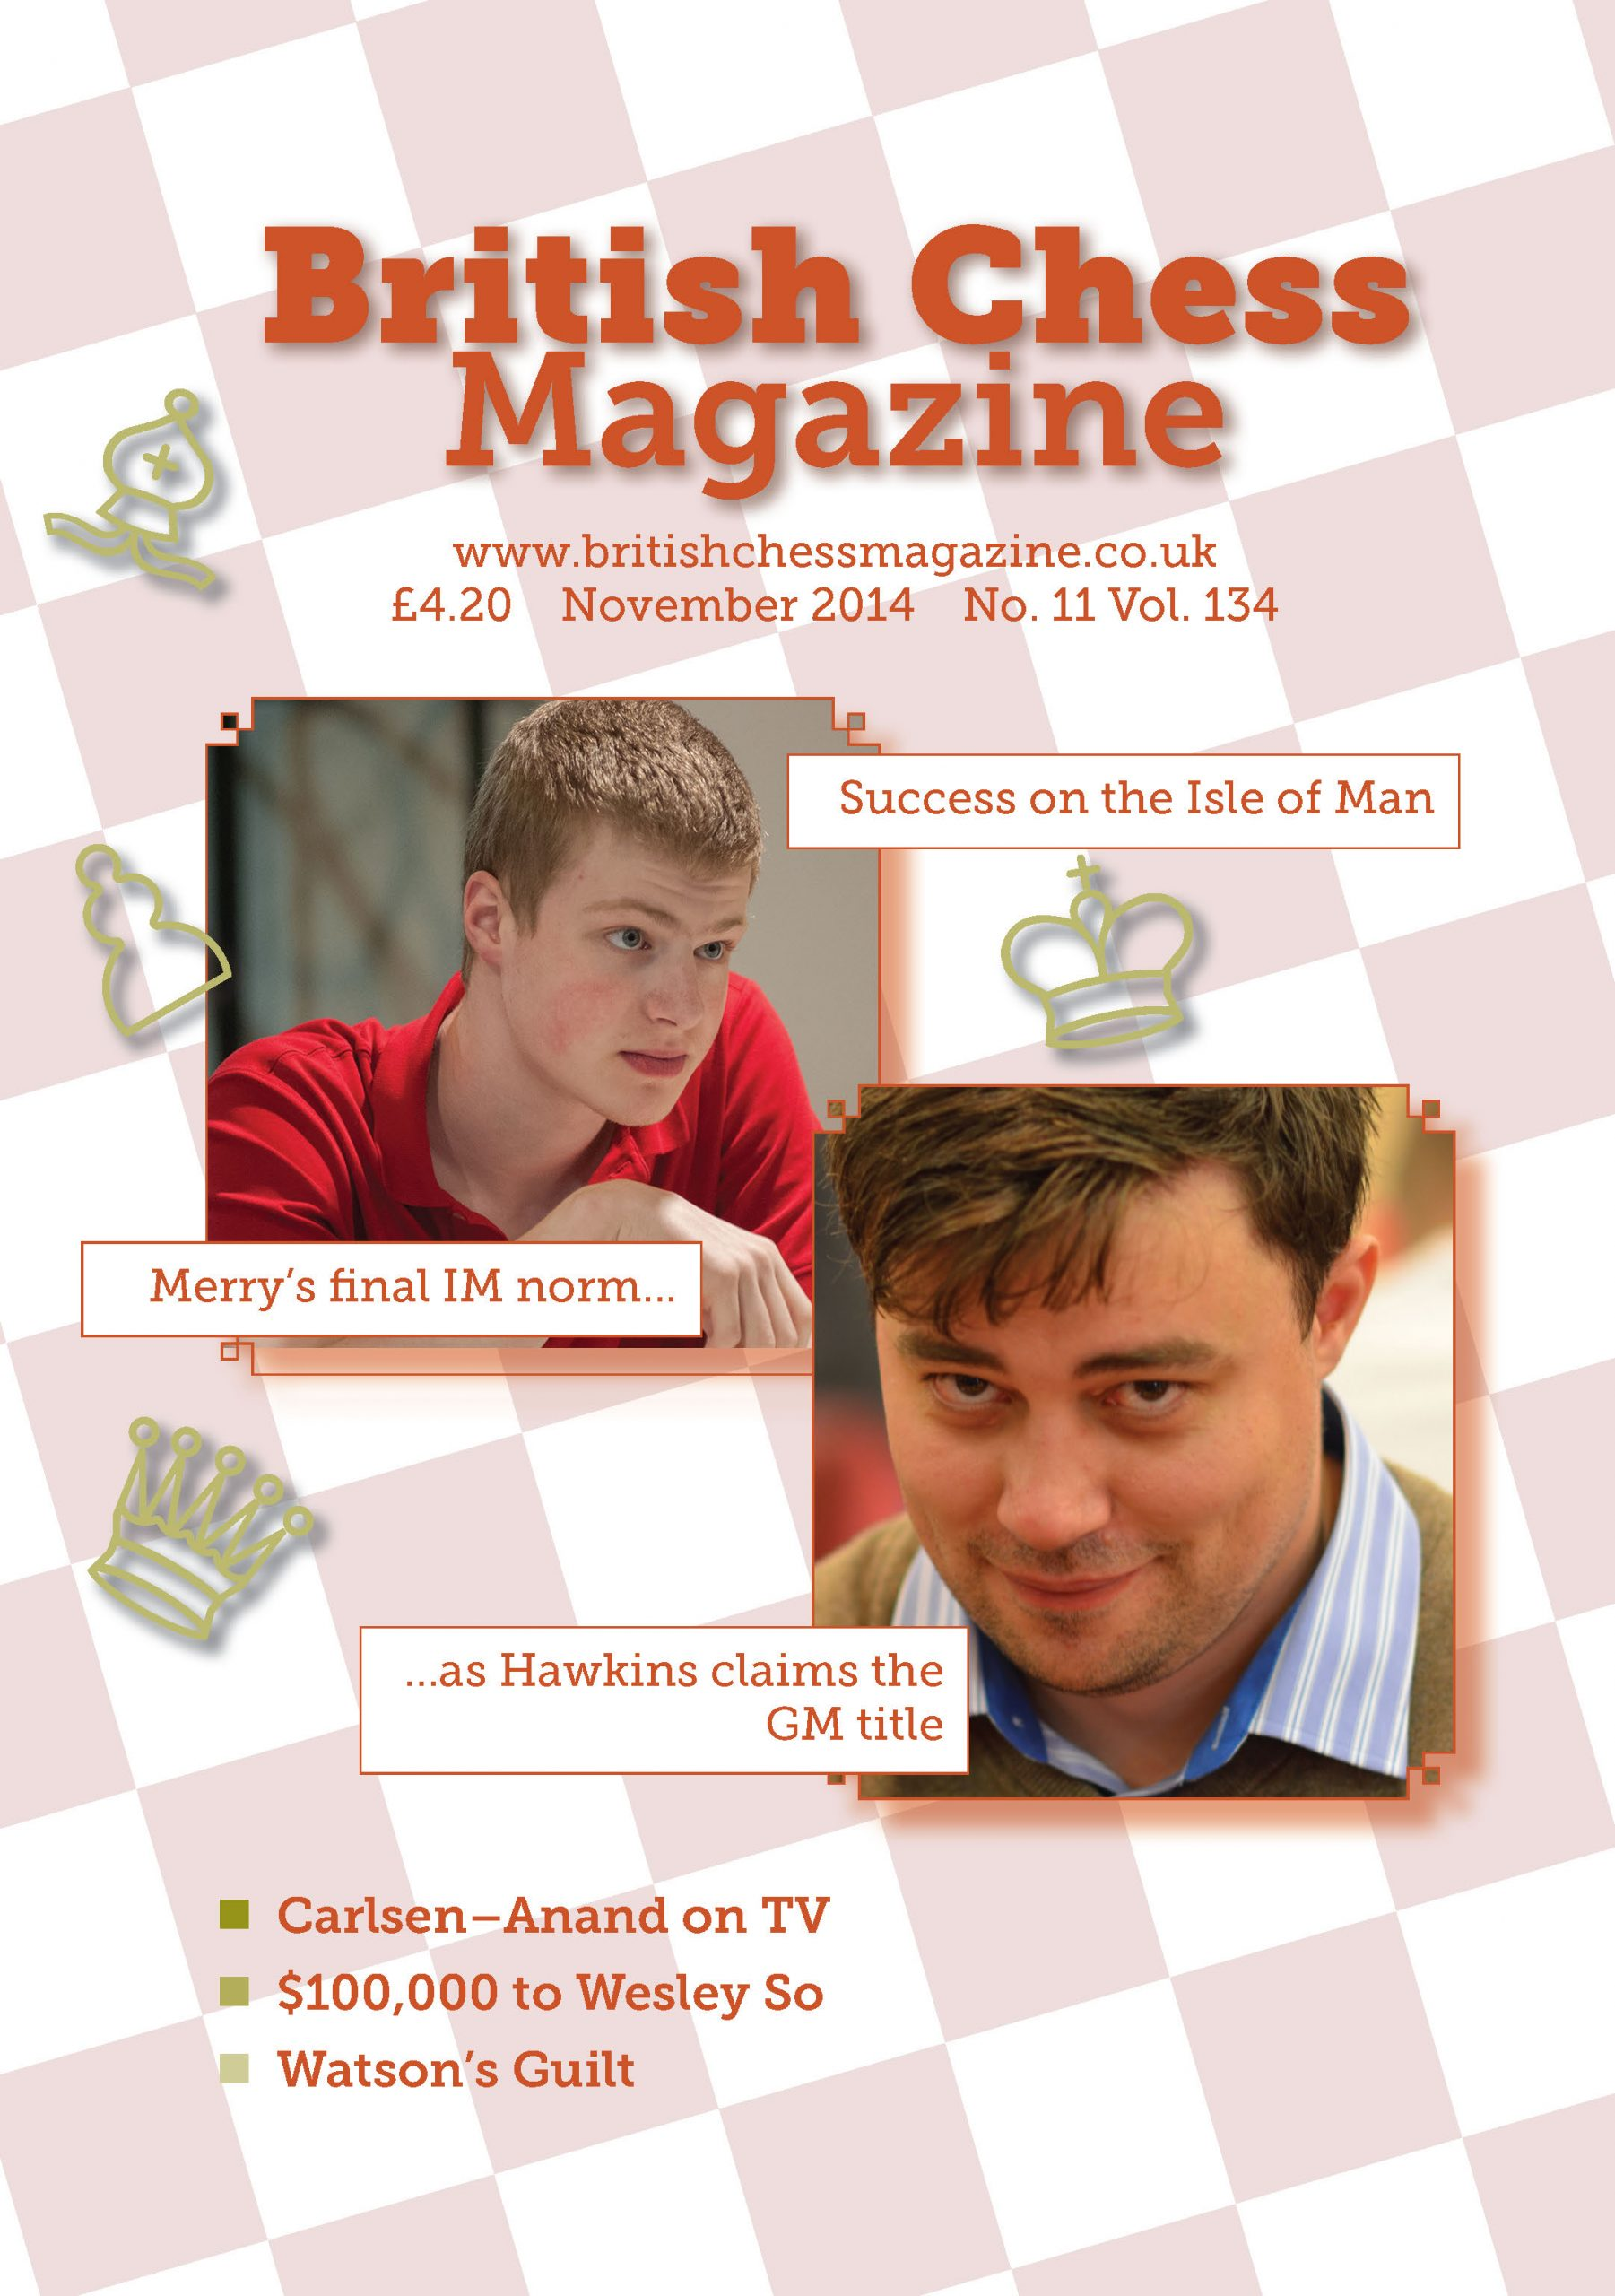 Alan Merry features on the front cover of the November 2014 issue of British Chess Magazine